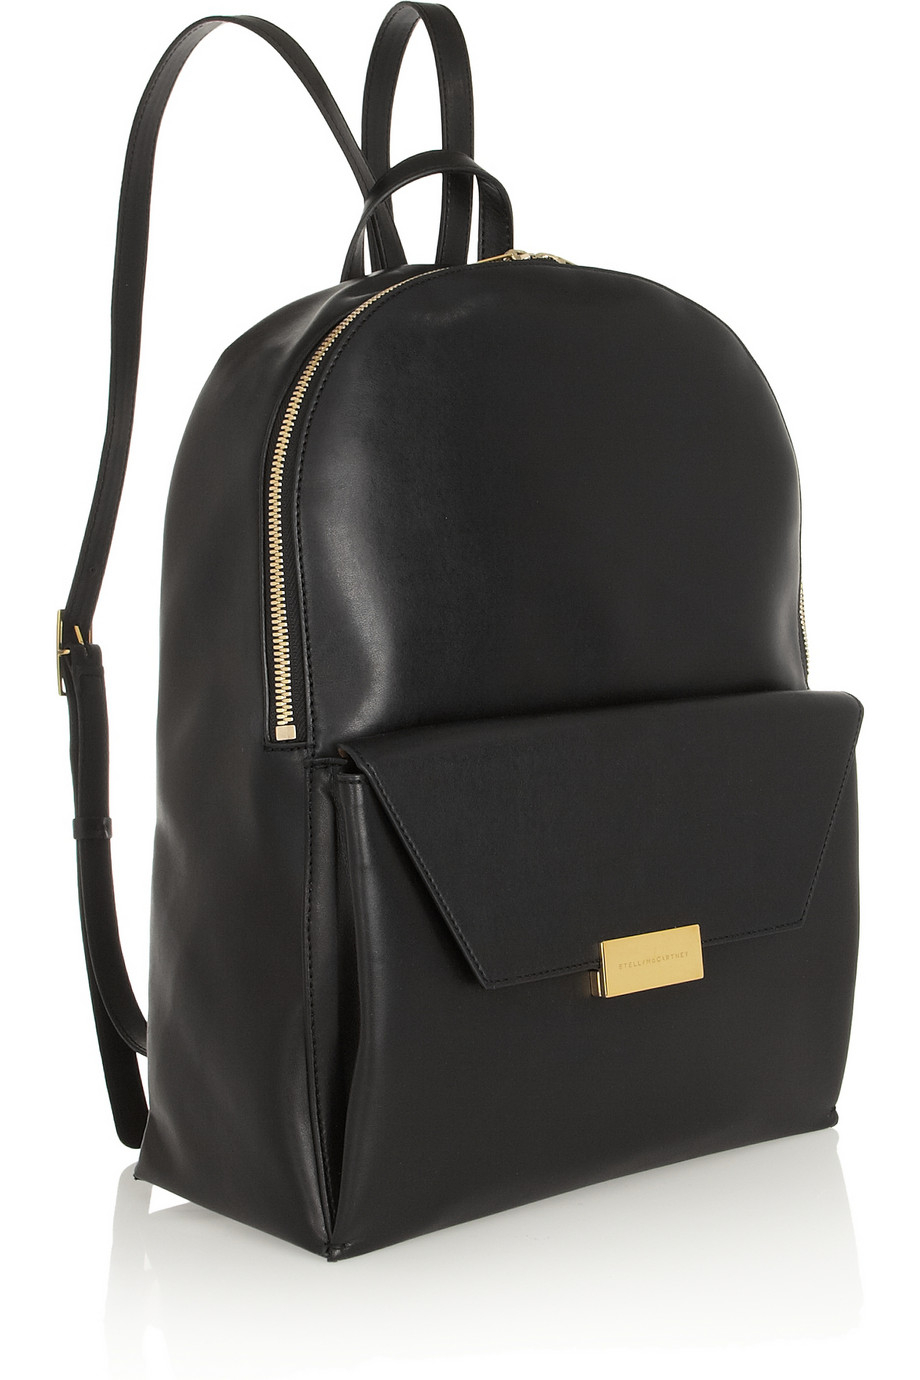 MyMate2 is a Handmade Black leather large backpack with creative black wool touch (kilim). Very practical backpack made Genuine soft yet strong leather ideal for school, work, MacBook or any other 13